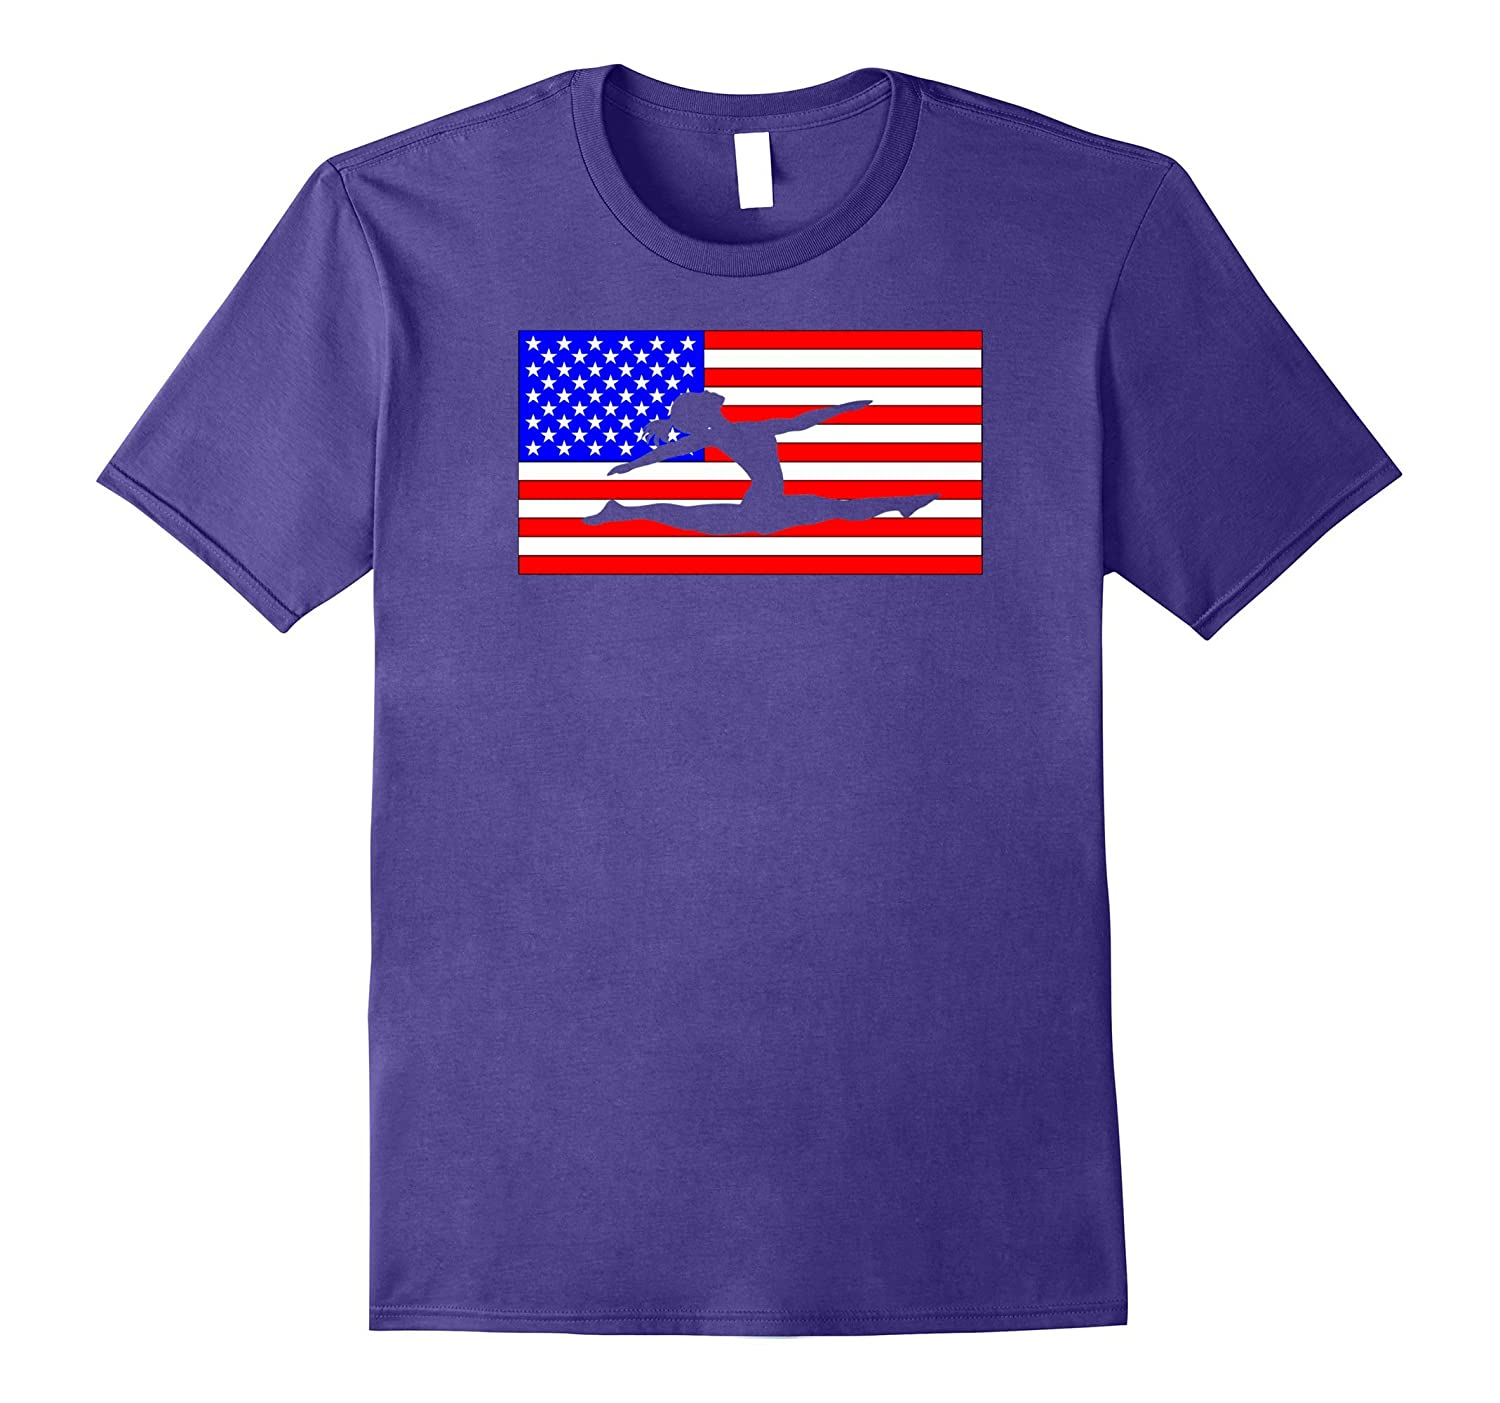 Girls Womans American Flag Gymnastics T-Shirt-Vaci